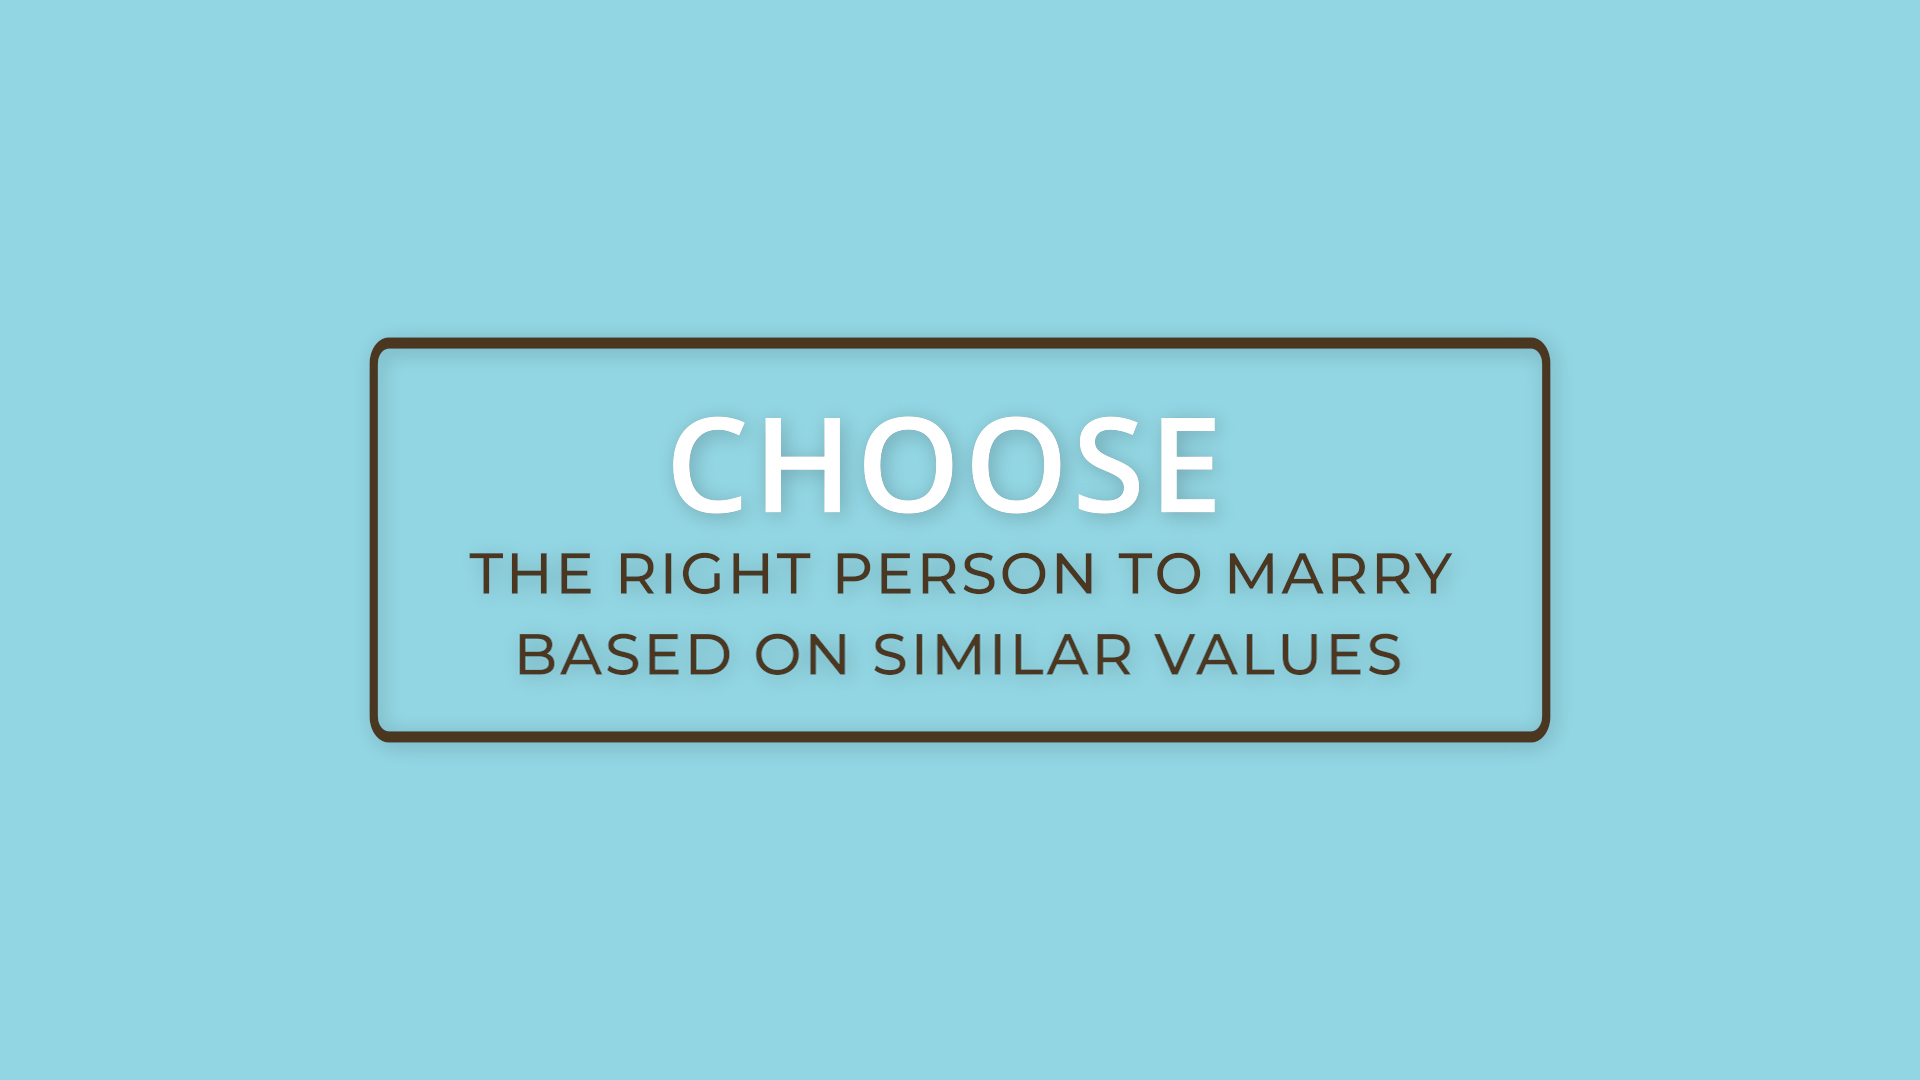 Choosing who to marry based on similar values